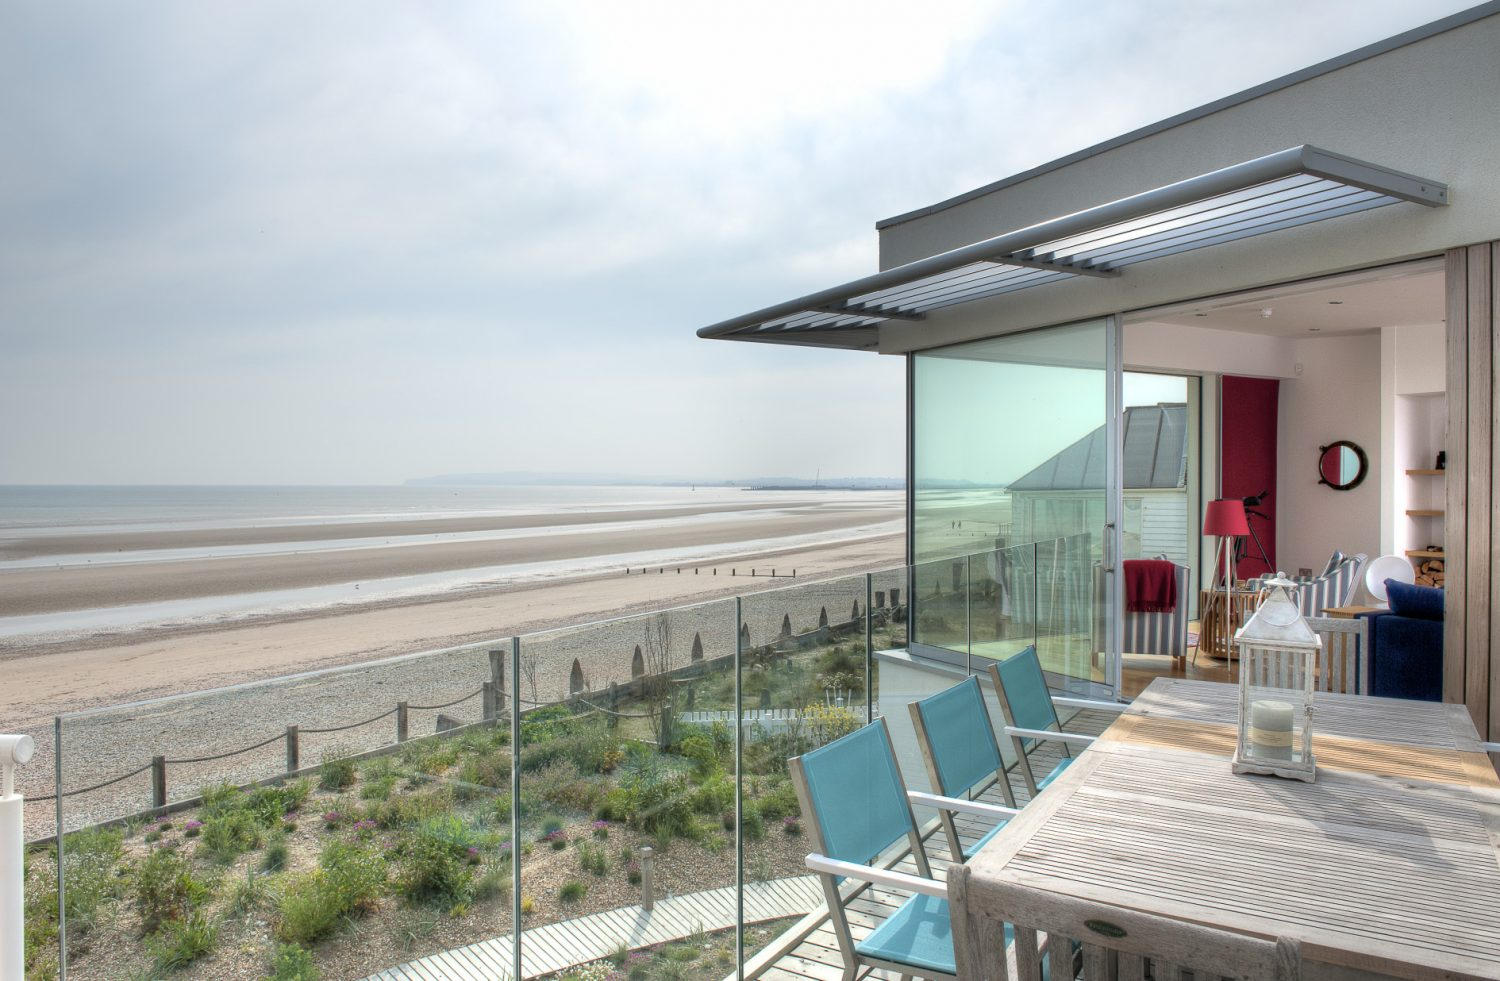 On the first floor at the front of the building, two walls are of floor to ceiling glass allowing an uncompromised view out to sea